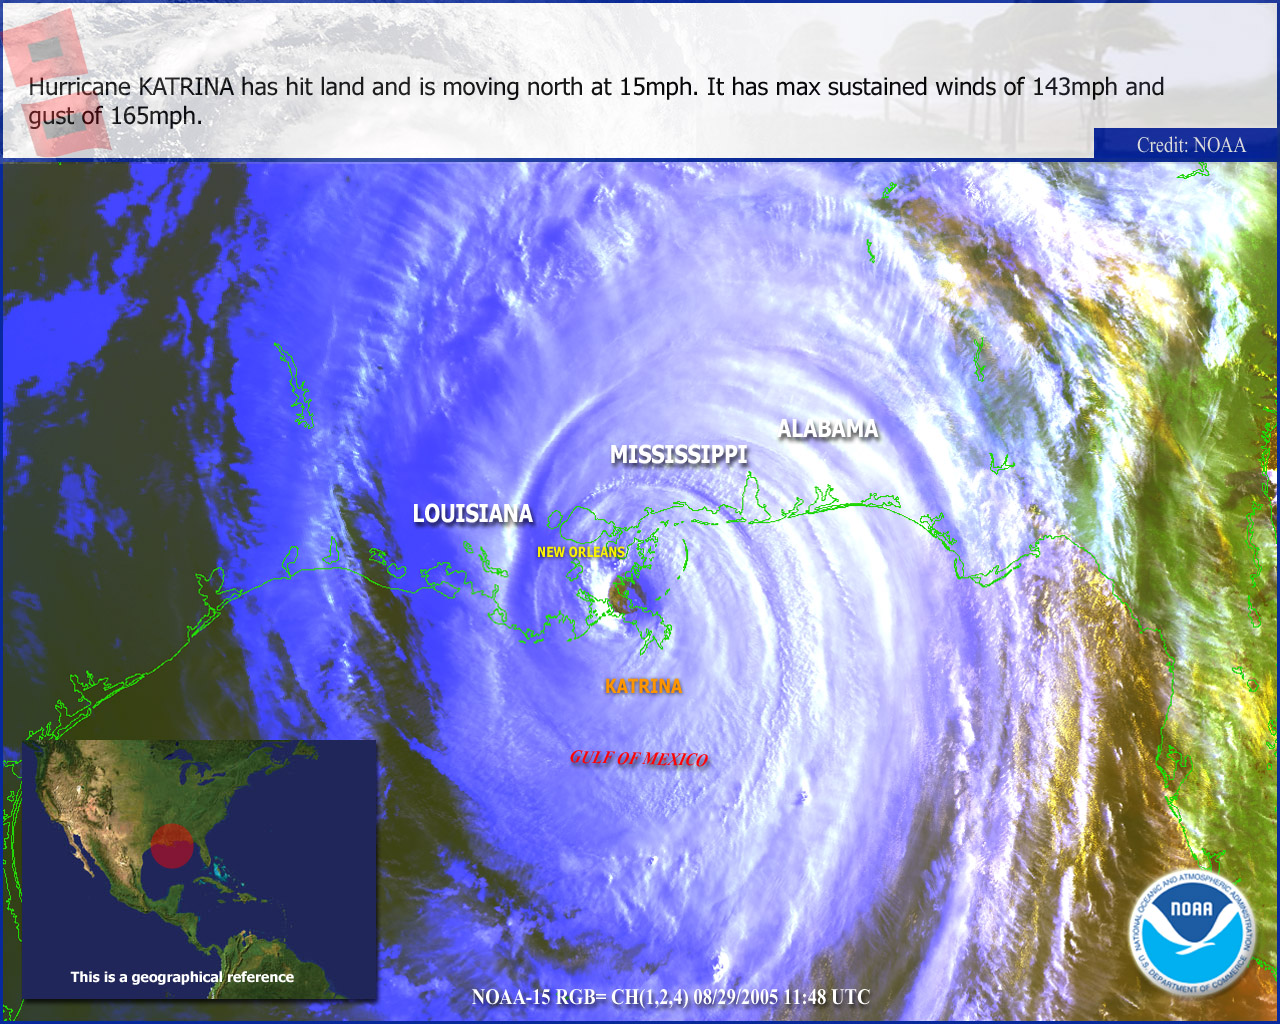 an essay on tropical cyclones essay Tropical cyclones in australia essays location: tropical cyclones occur in the northern part of australia, around the periphery, or in the tropics.